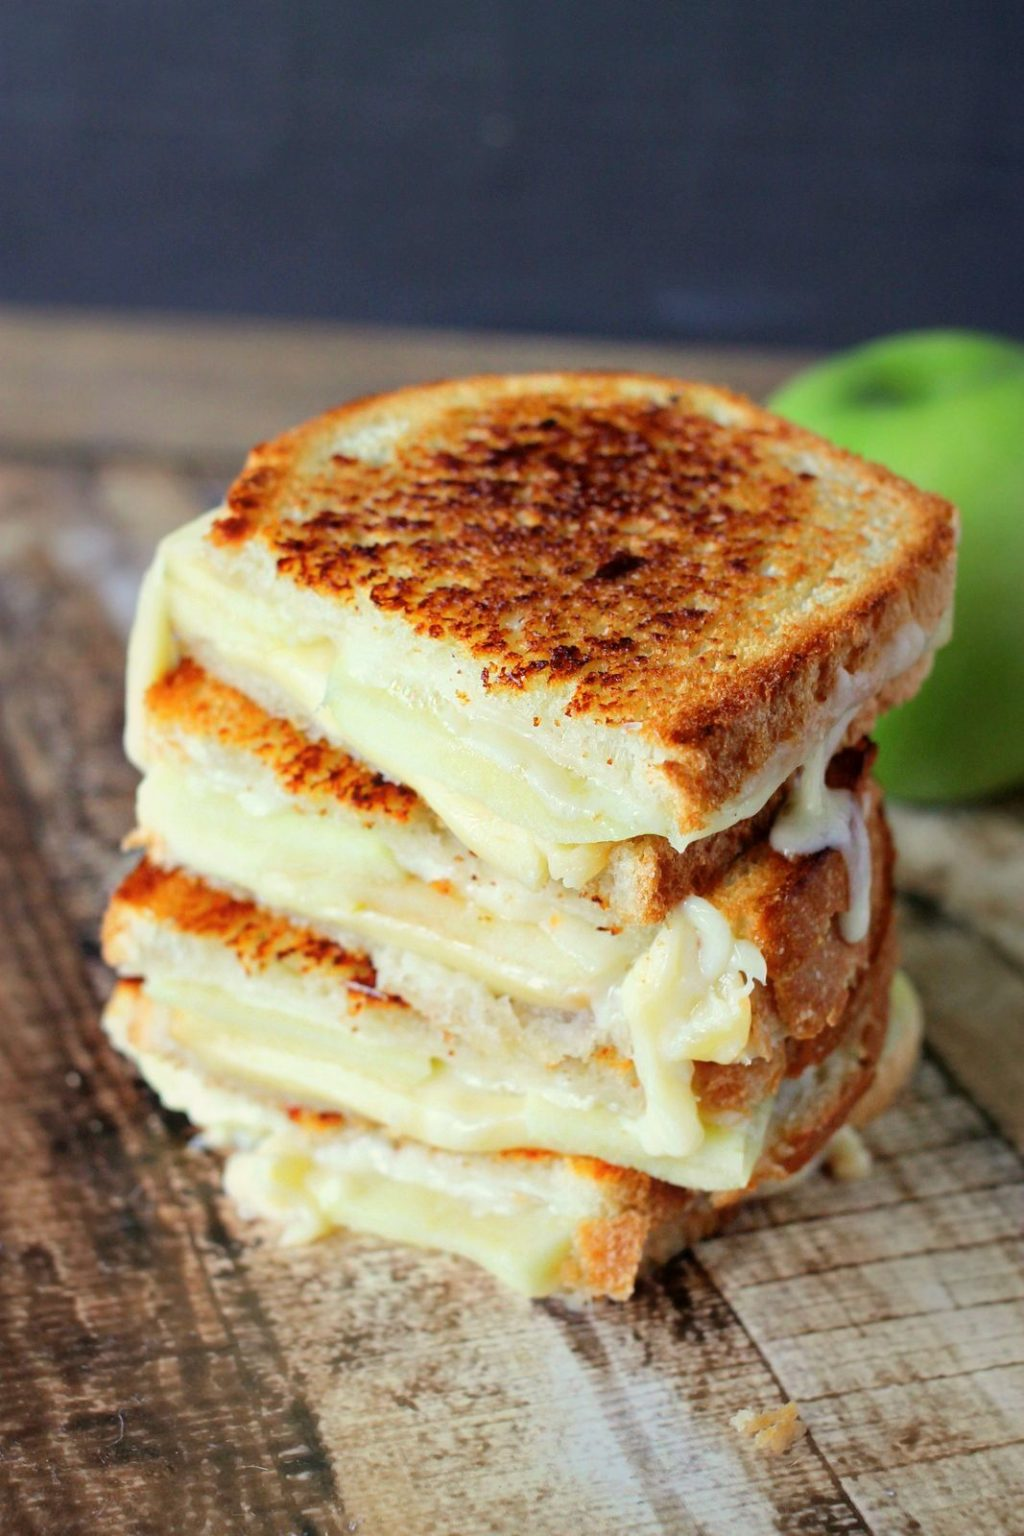 Apple Grilled Cheese is the perfect fall lunch! Smokey gouda cheese melted between tart granny smith apples is savory and delicious!